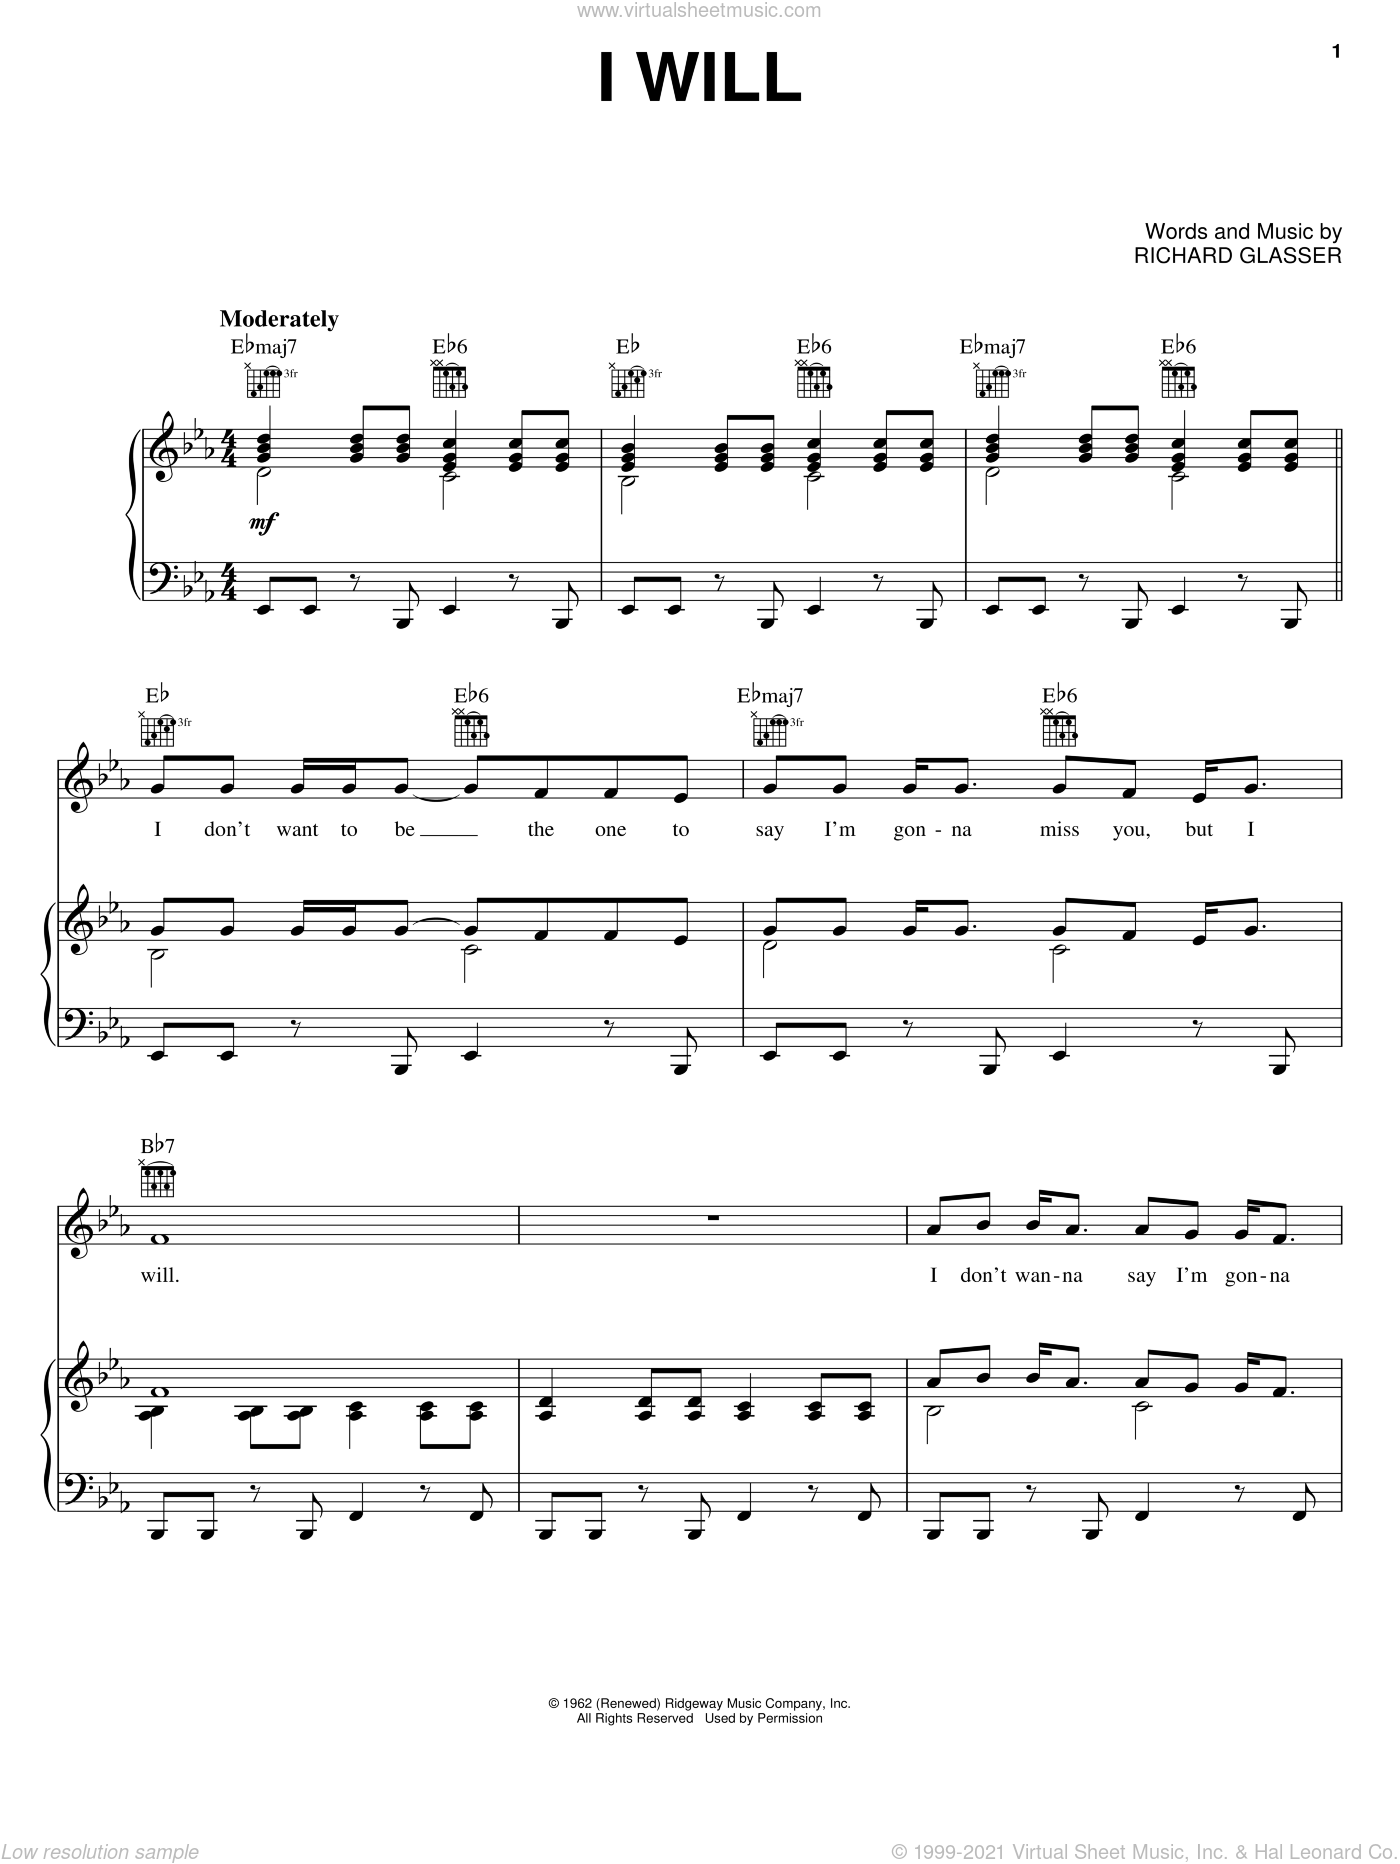 I Will sheet music for voice, piano or guitar by Dean Martin and Richard Glasser, intermediate skill level